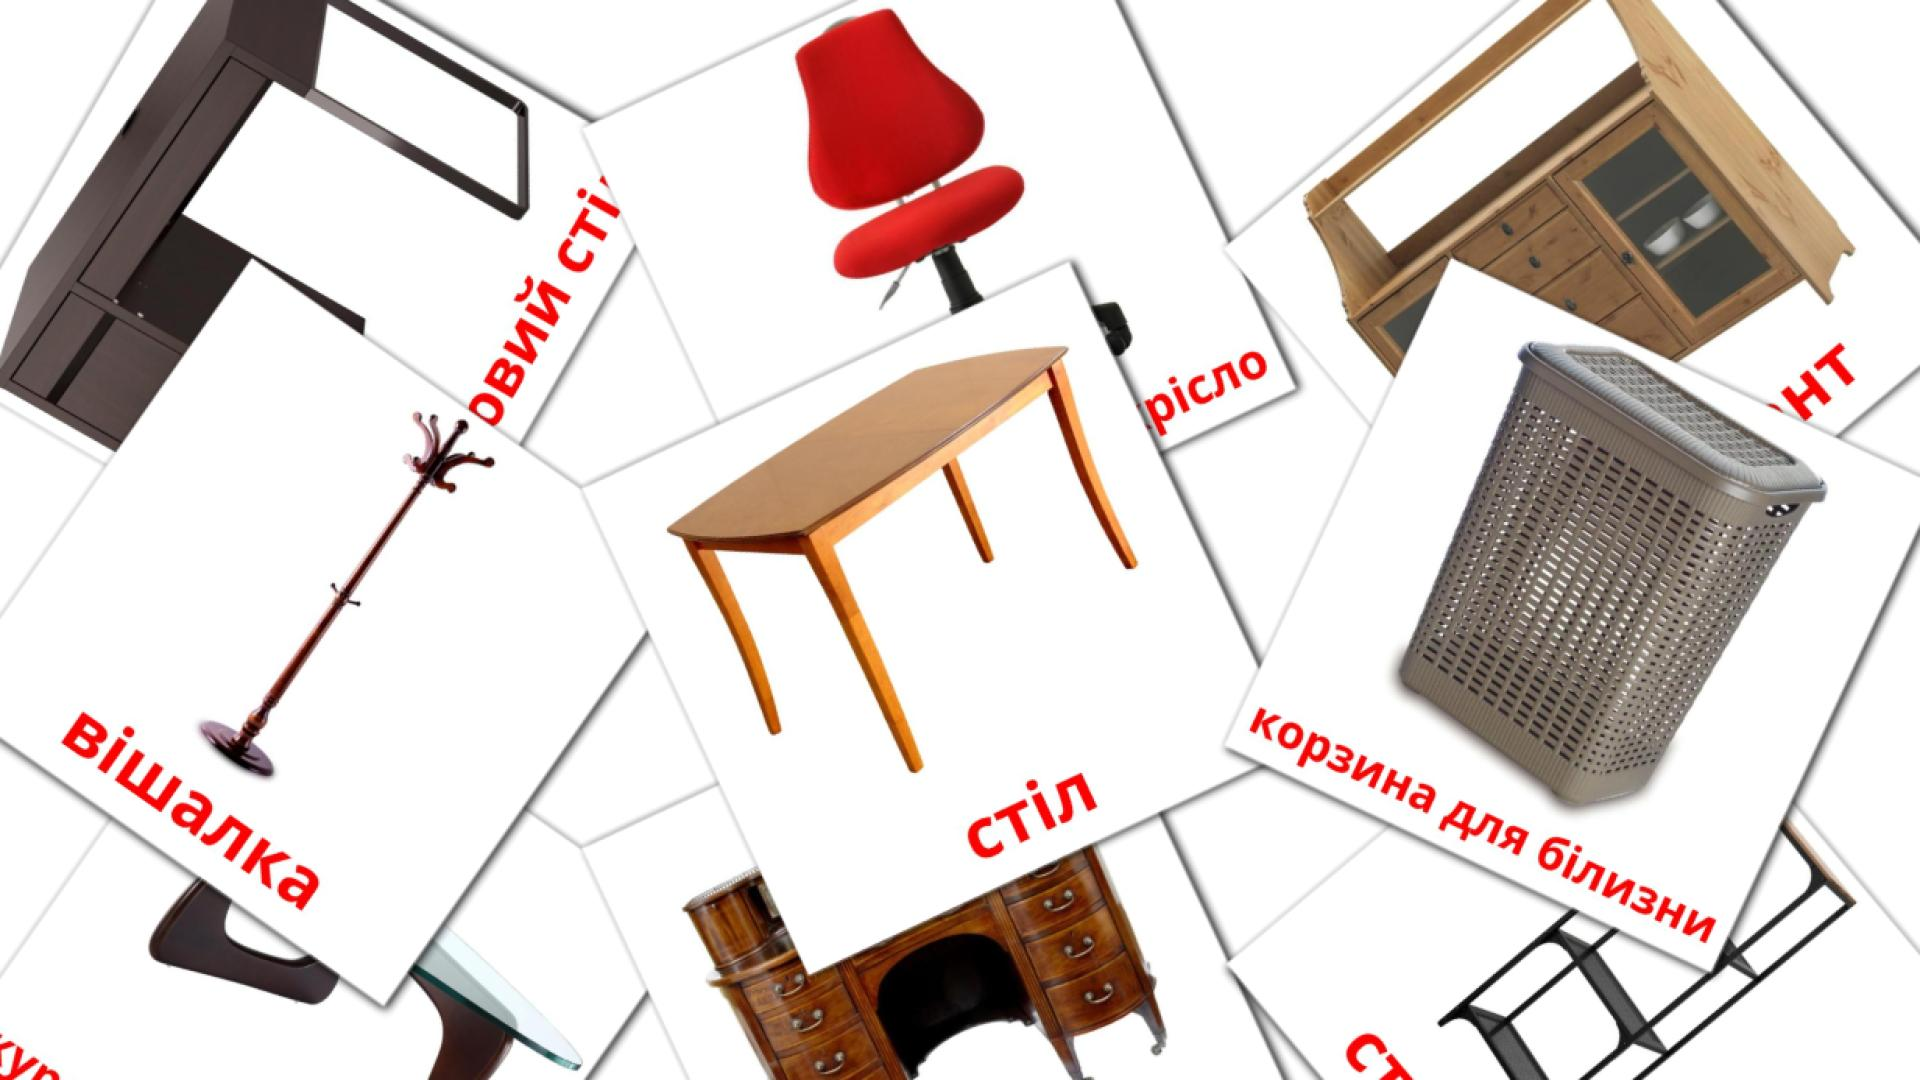 Furniture flashcards